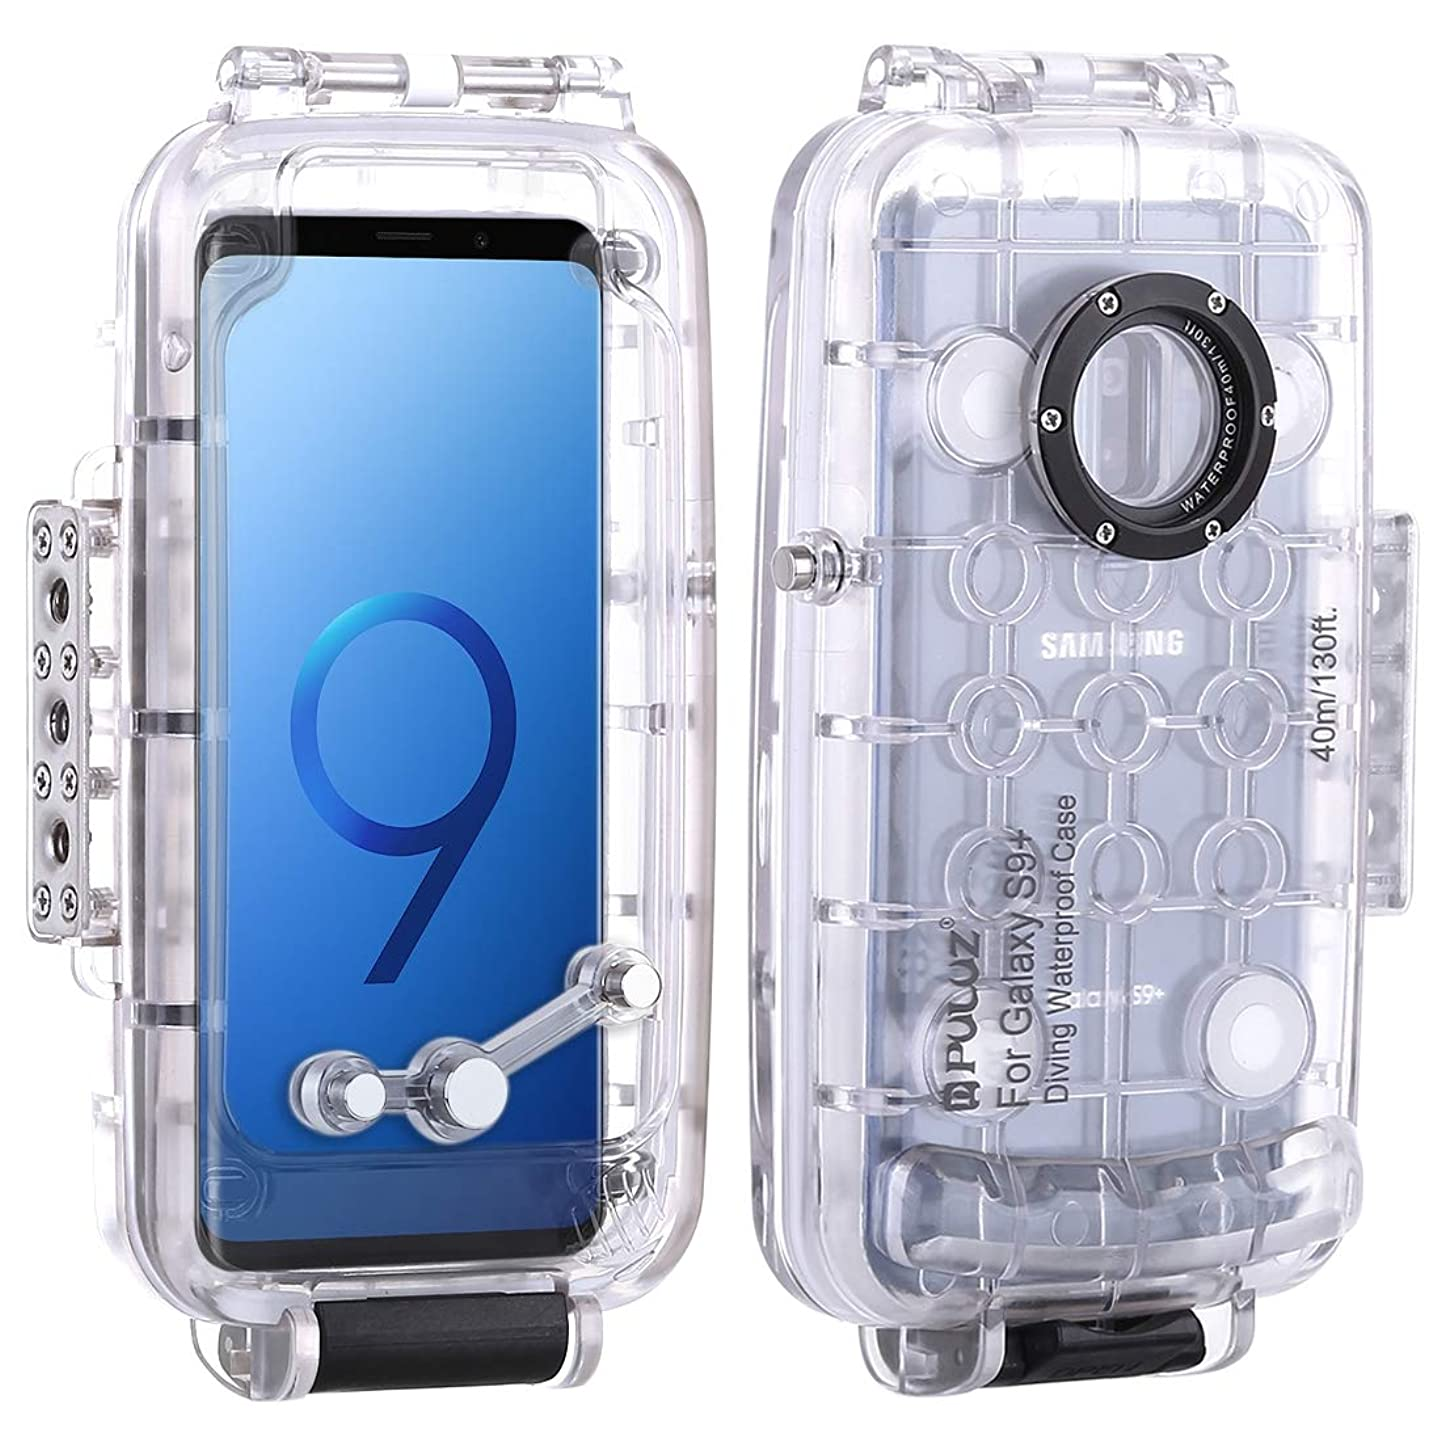 for Samsung Galaxy S9+ 40m/130ft Professional Underwater Phone Diving Case, Waterproof Diving Housing Photo Video Taking Underwater Cover Case for Diving Surfing (Transparent, for Samsung Galaxy S9+) kkztmtgbnfz3